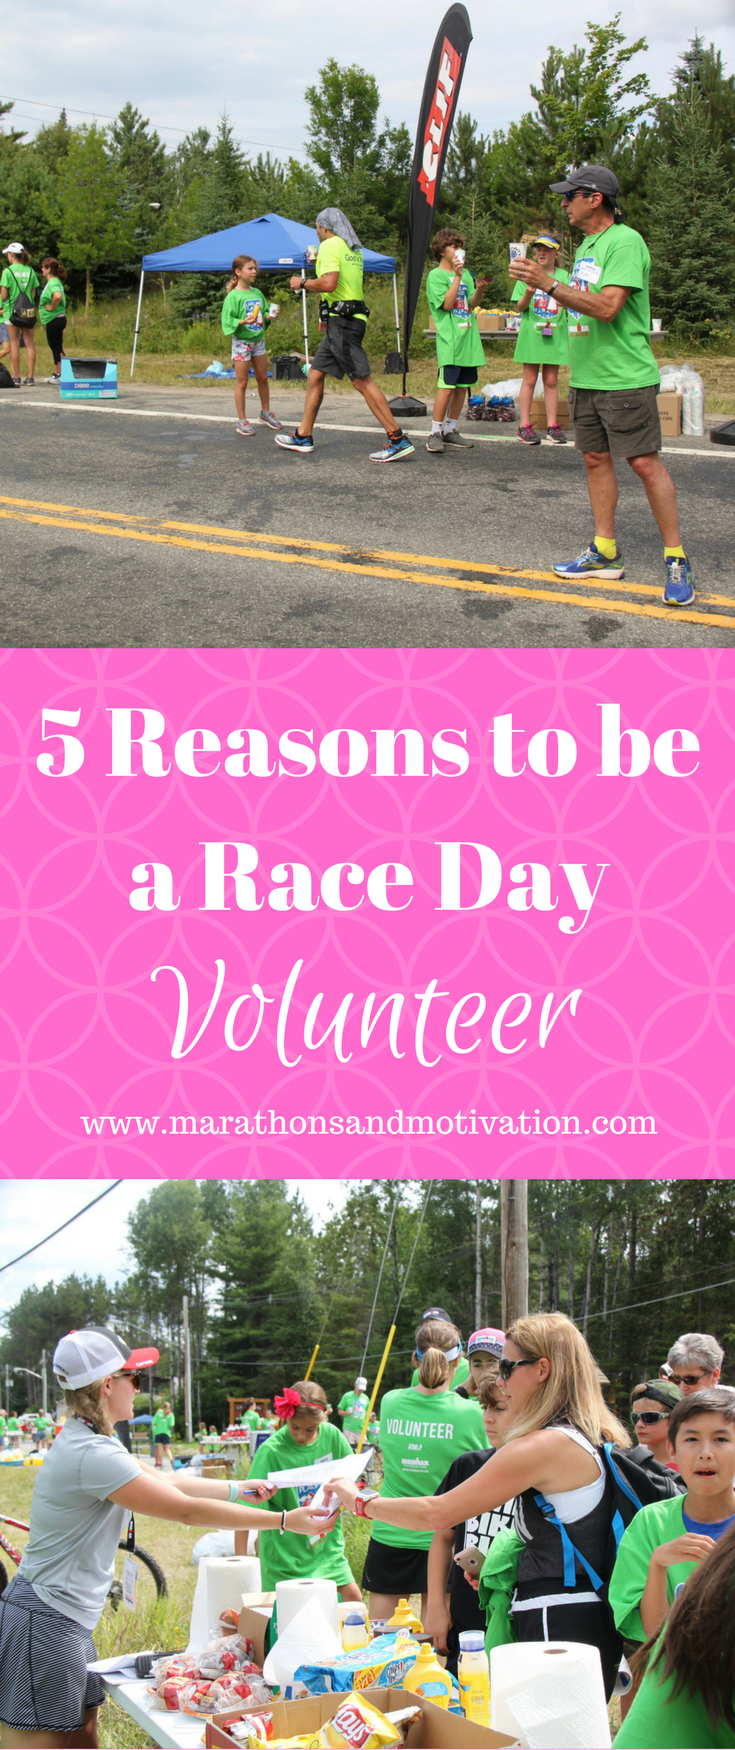 Five Reasons To Be A Race Day Volunteer Volunteering At A Triathlon Or Running Race Is An Incredibly Rewarding Exp Race Day Running Training Plan Running Race